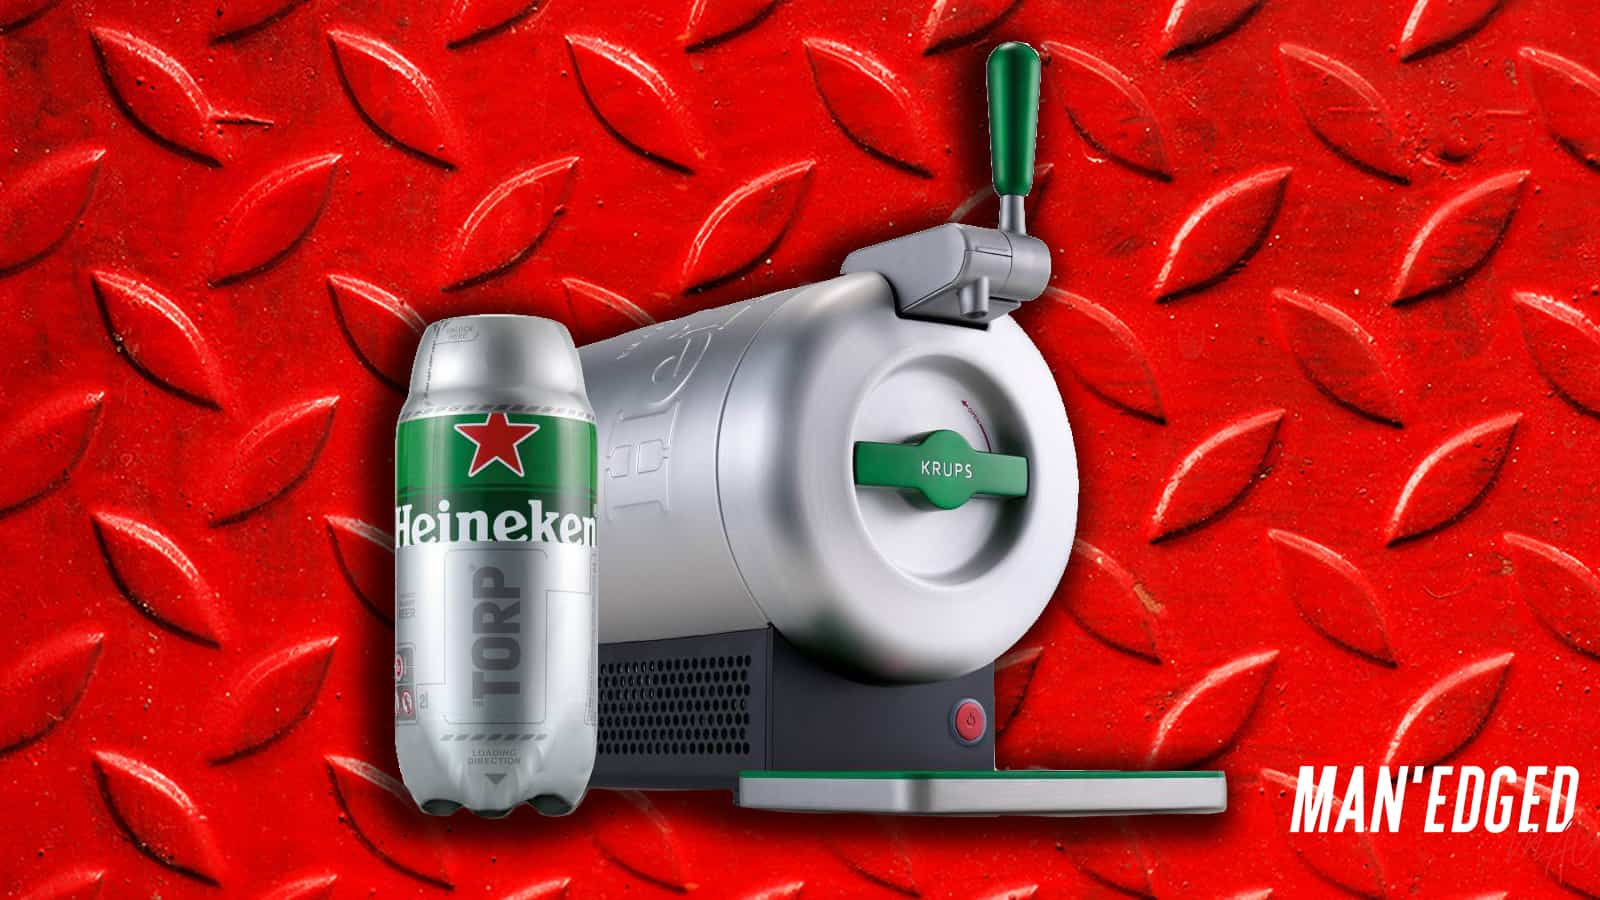 The best gifts for men - our top 19 gifting ideas that guys will love - the SUB from Heineken home draught system.